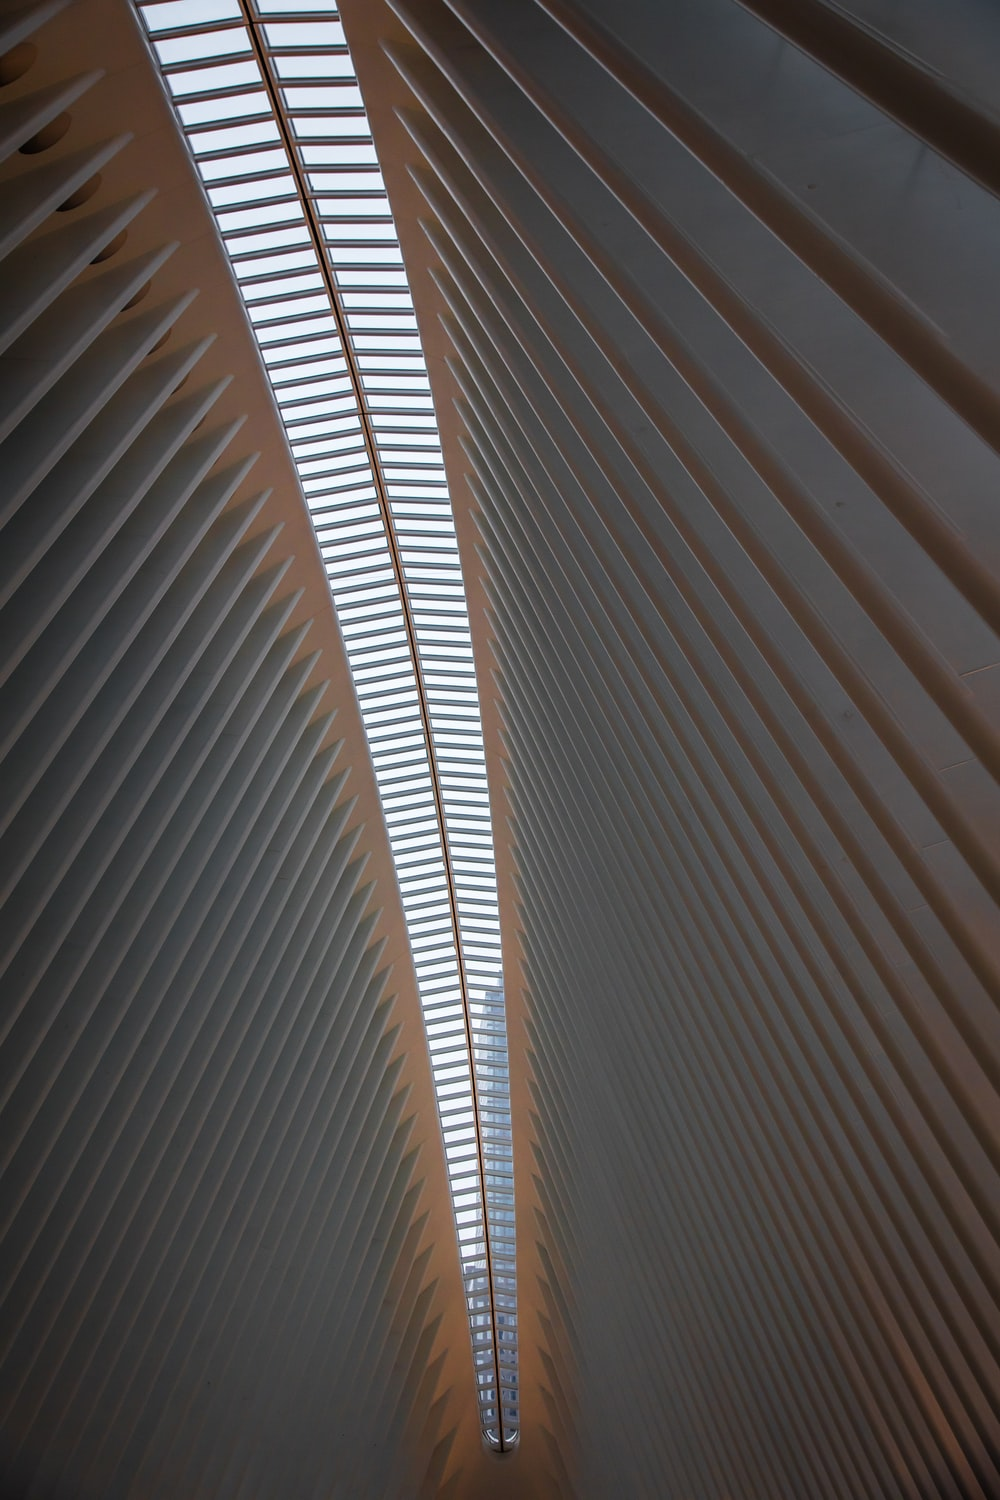 worm's-eye view of white ceiling